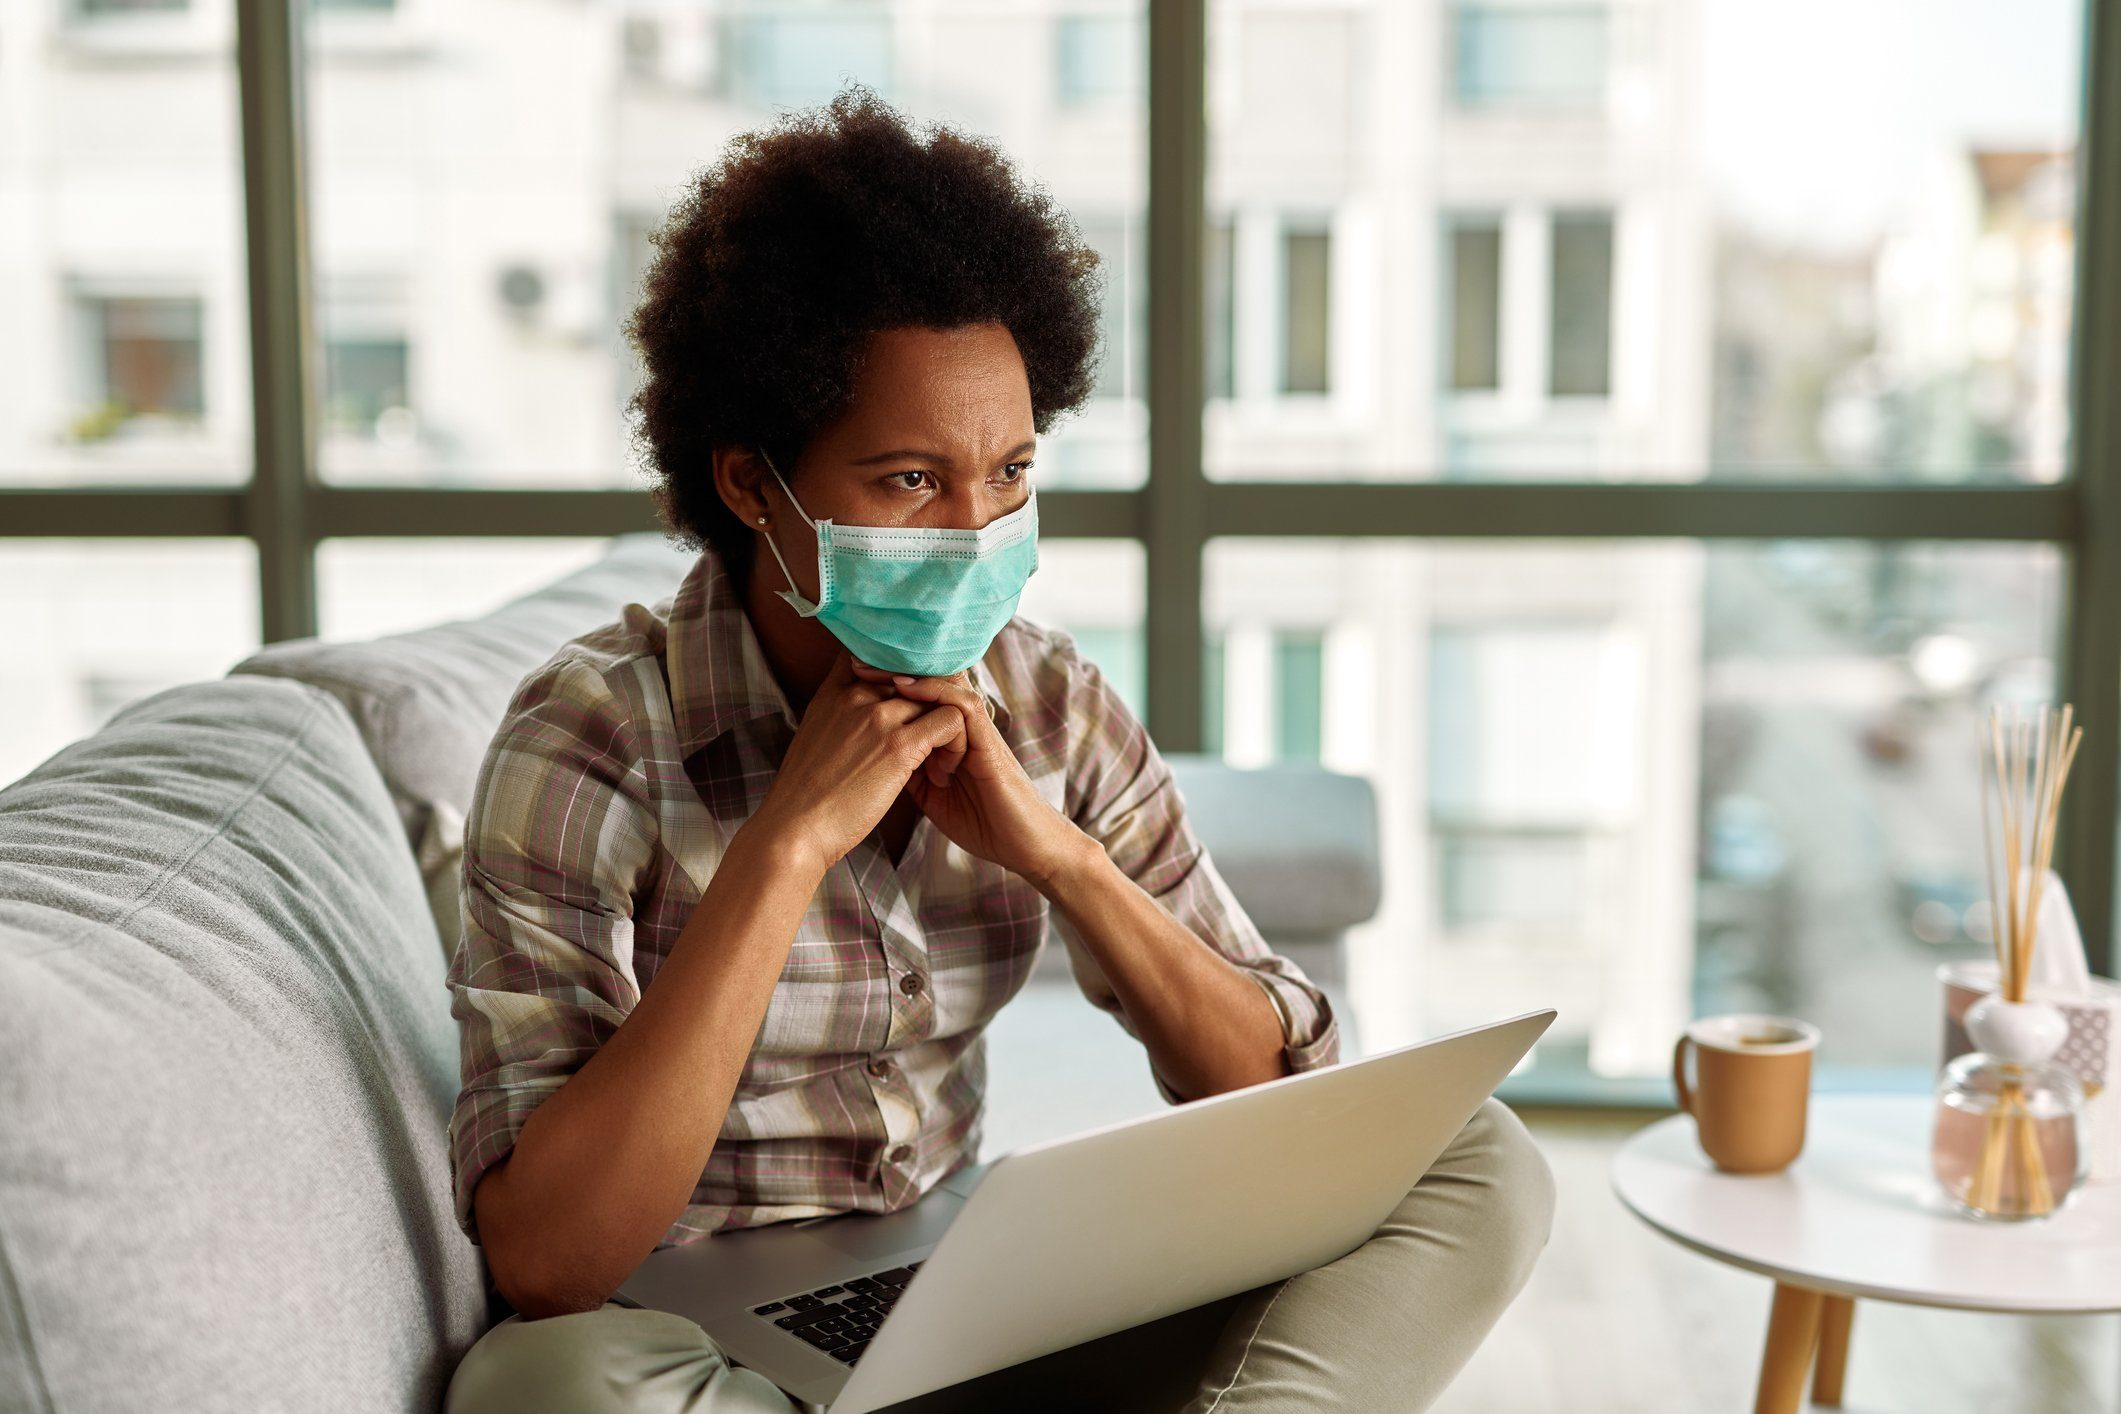 Pensive African American woman with face mask using laptop in the living room.